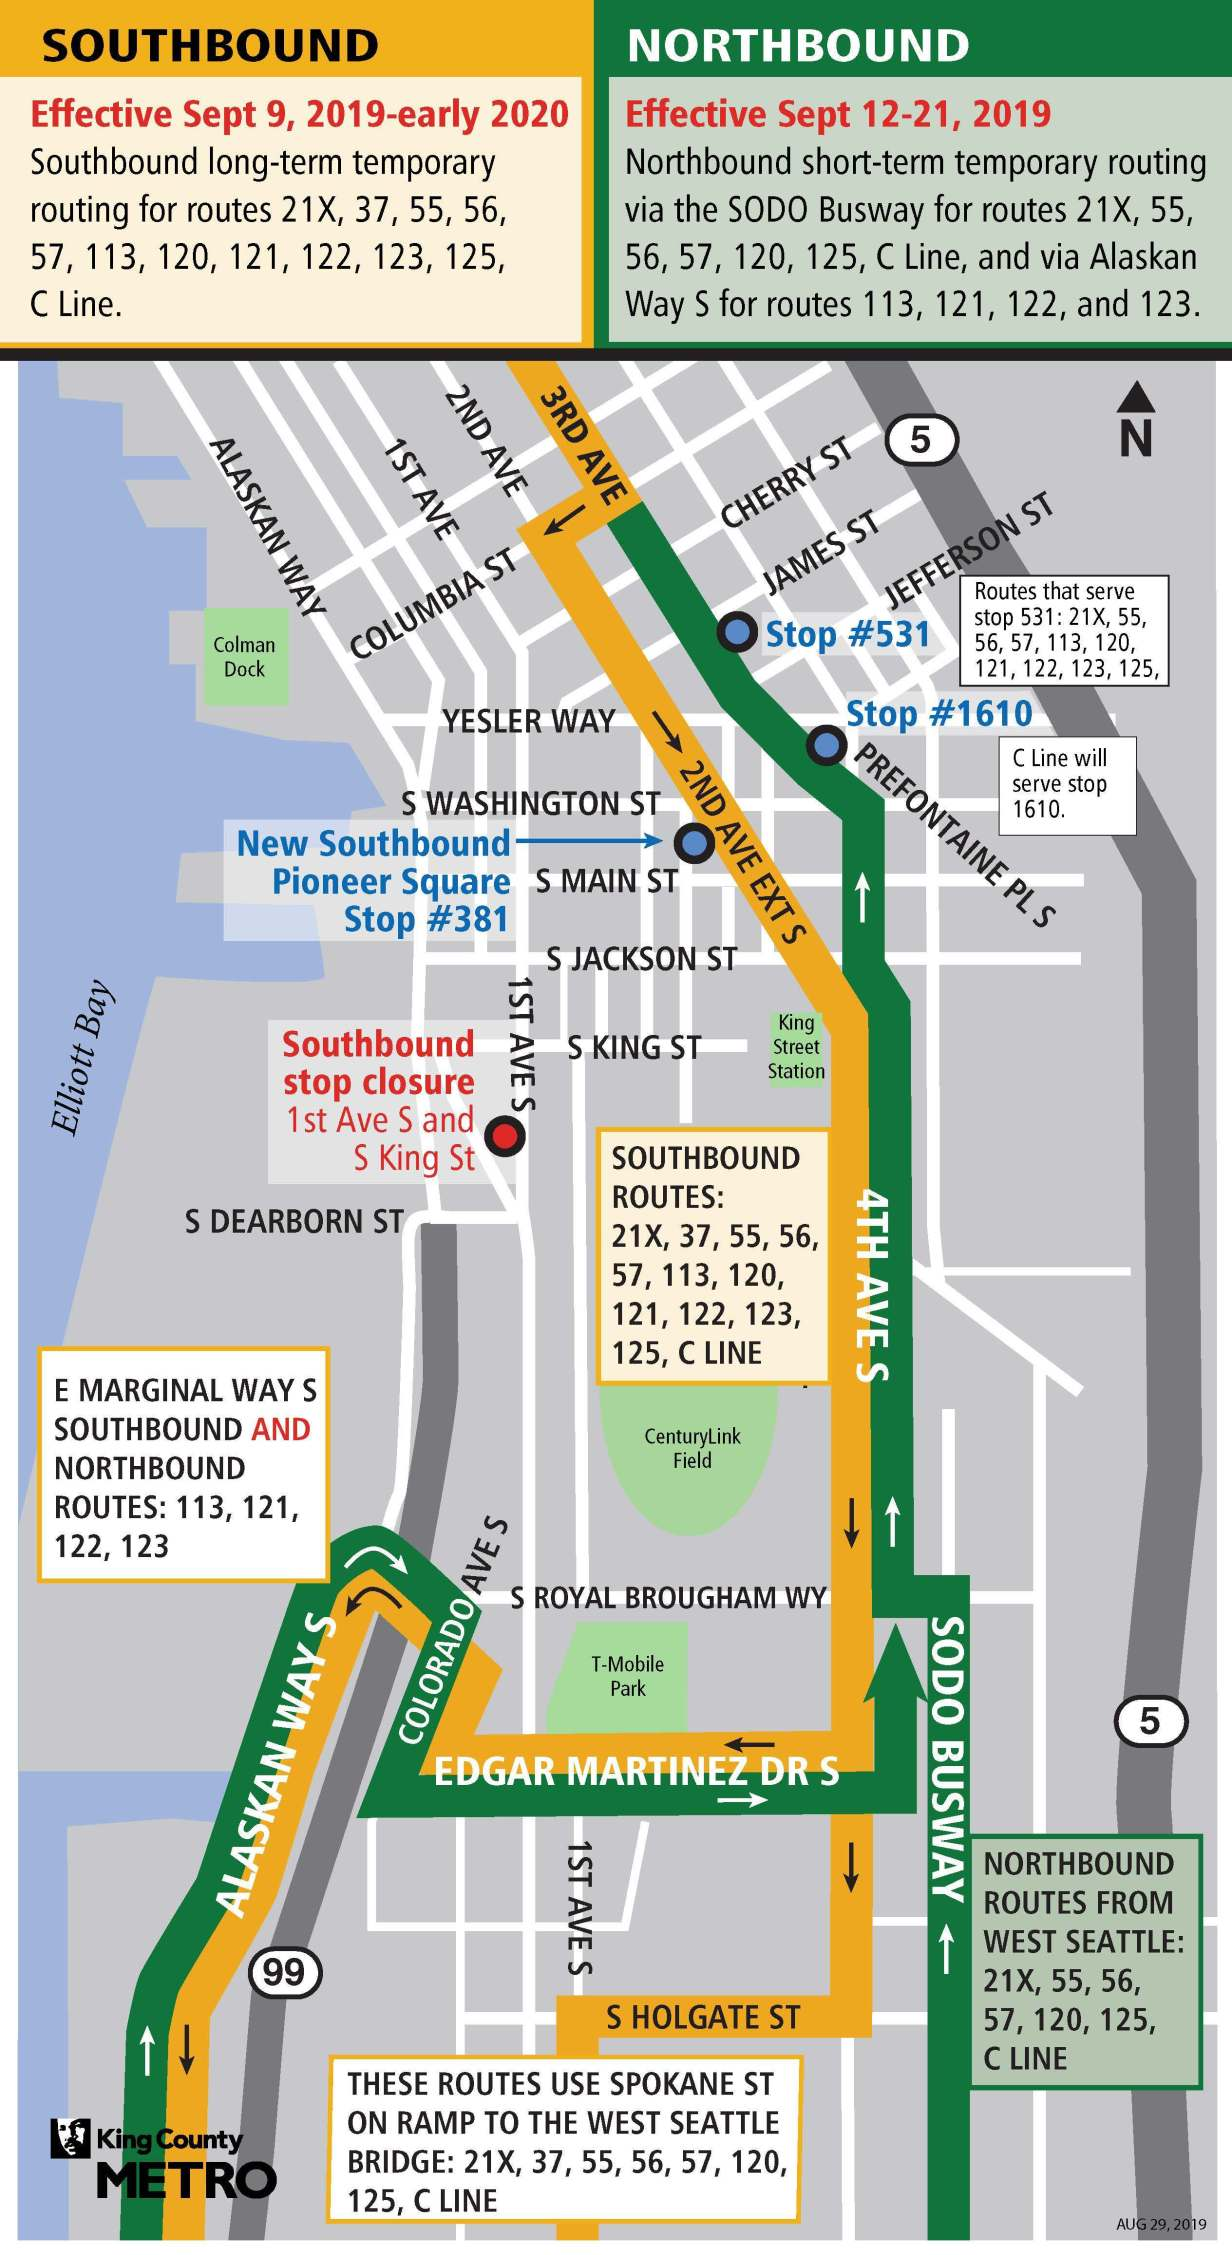 Seattle Transit Blog – Covering Transit and Land Use in the